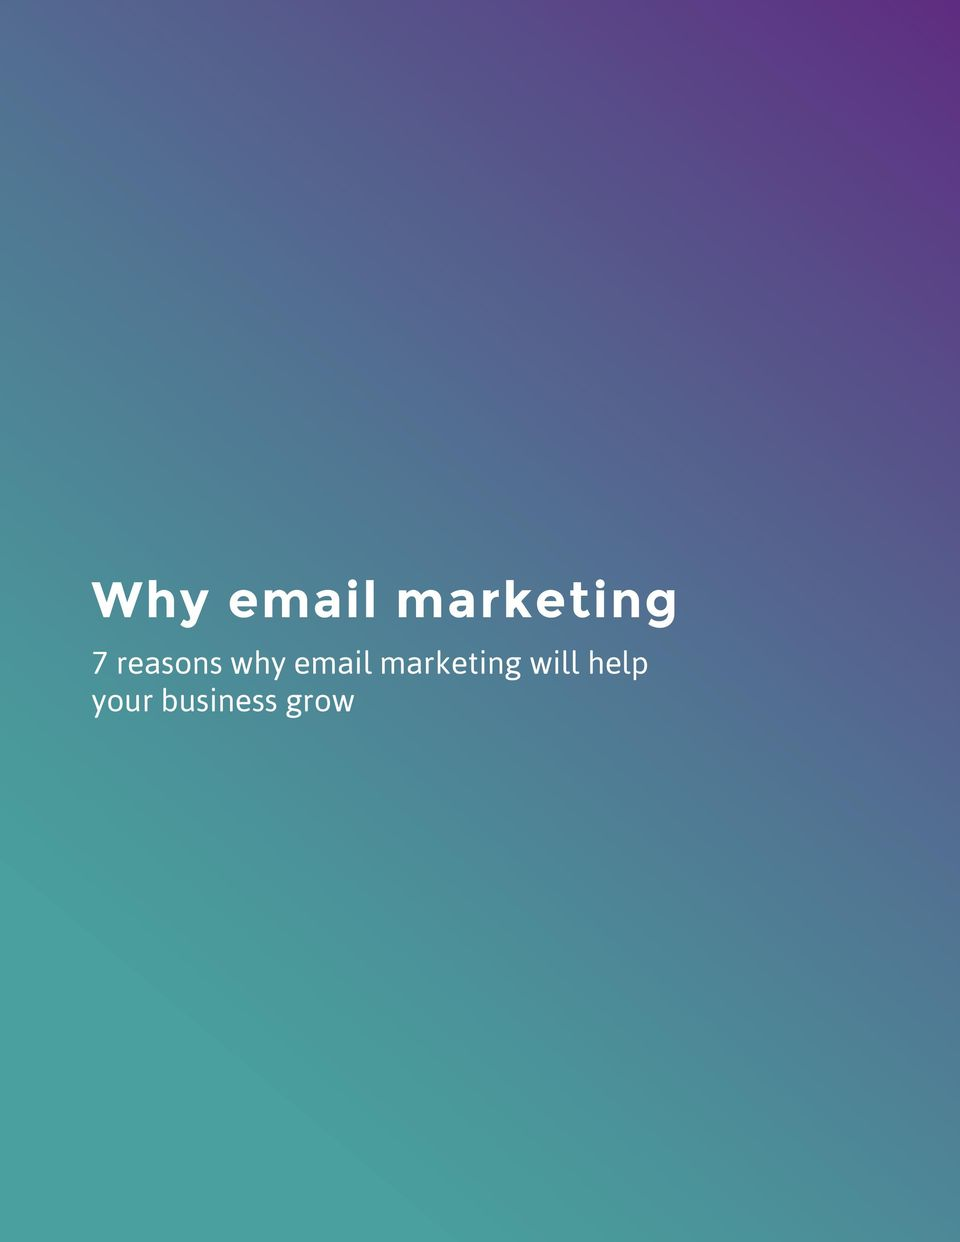 WHY EMAIL MARKETING: 7 REASONS WHY USING